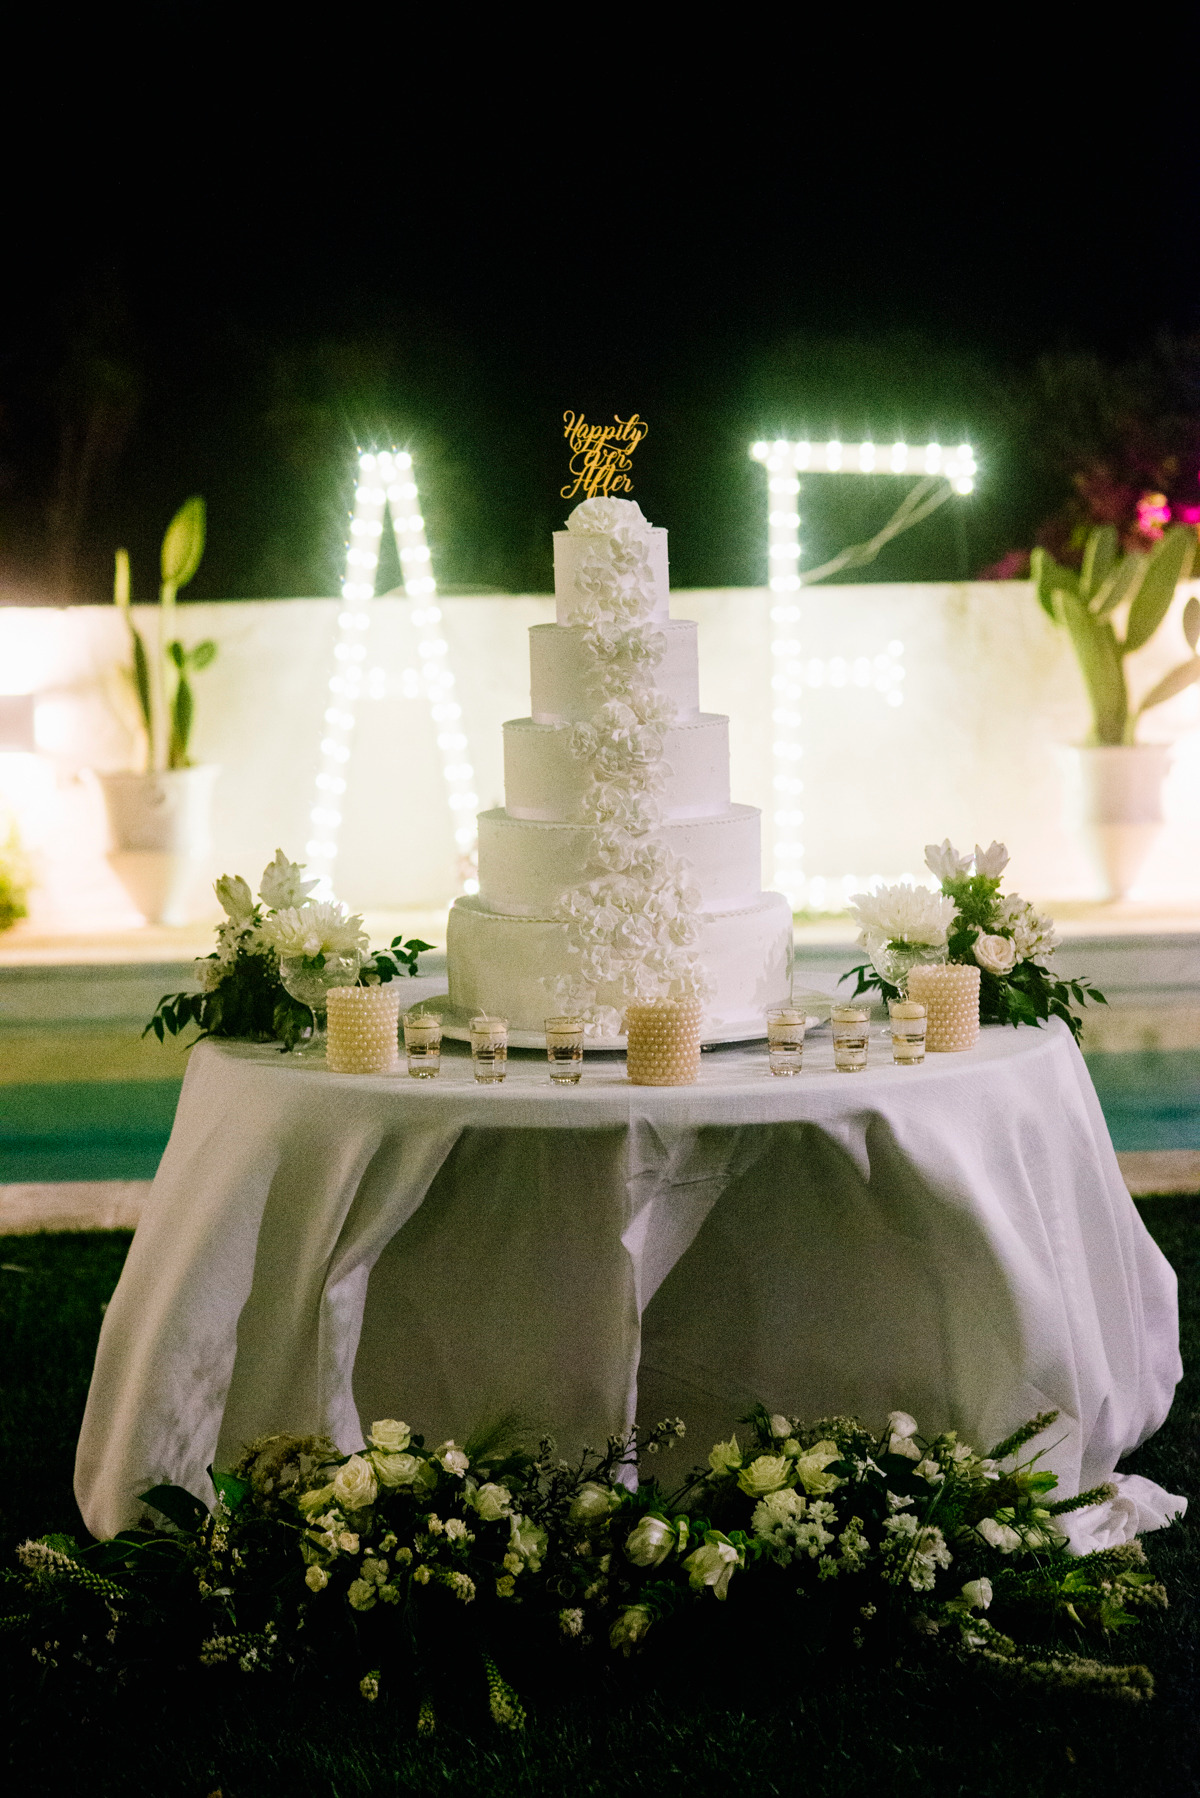 happily ever after topped wedding cake